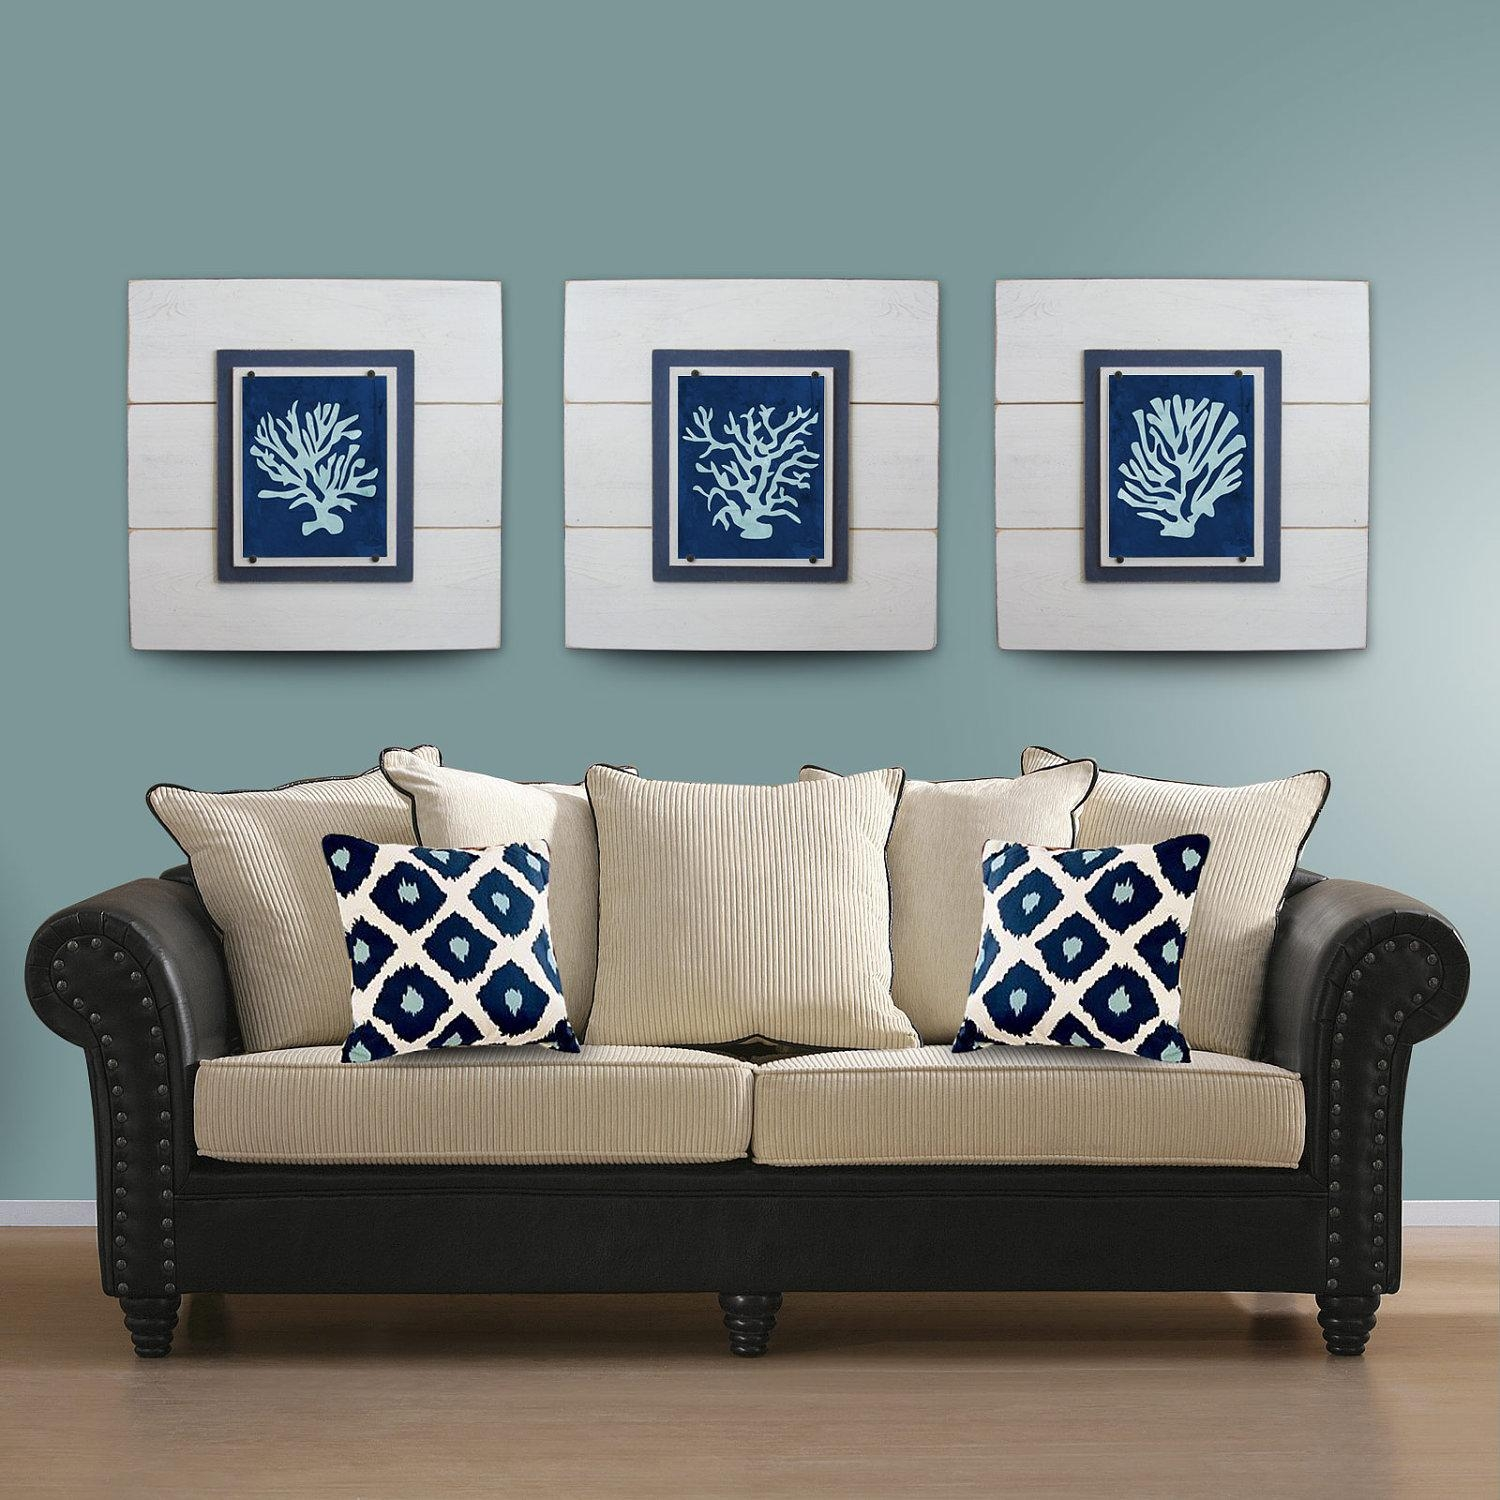 Salecoral Wall Art Set Of 3 White Framed 8X10 Xtra Large Within Wall Art Sets Of (View 4 of 20)